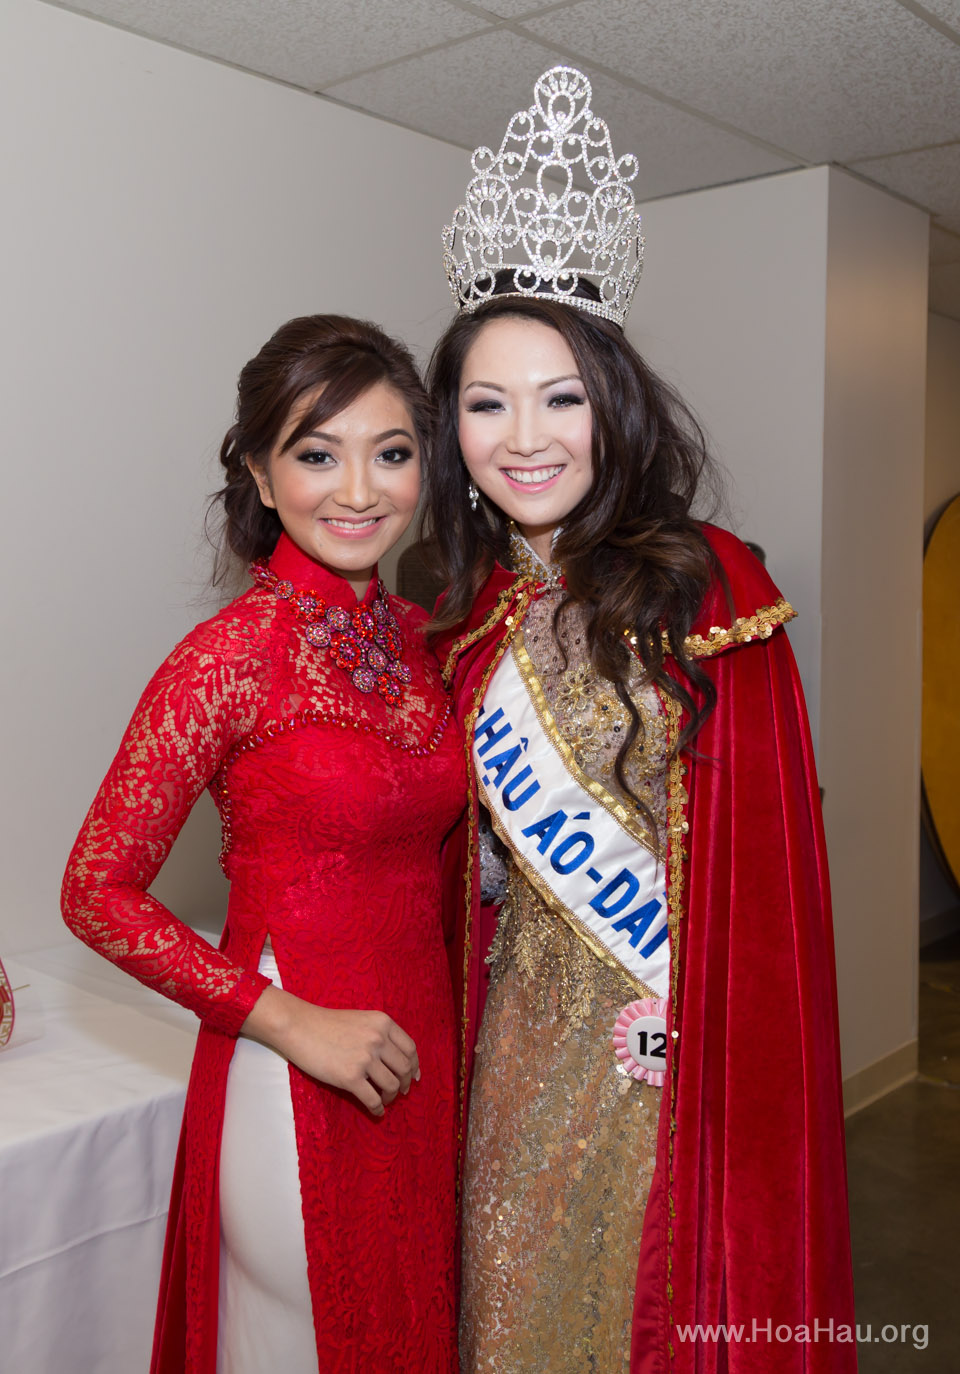 Miss Vietnam of Northern California 2014 - Hoa Hau Ao Dai Bac Cali 2014 - Behind the Scenes - Image 330